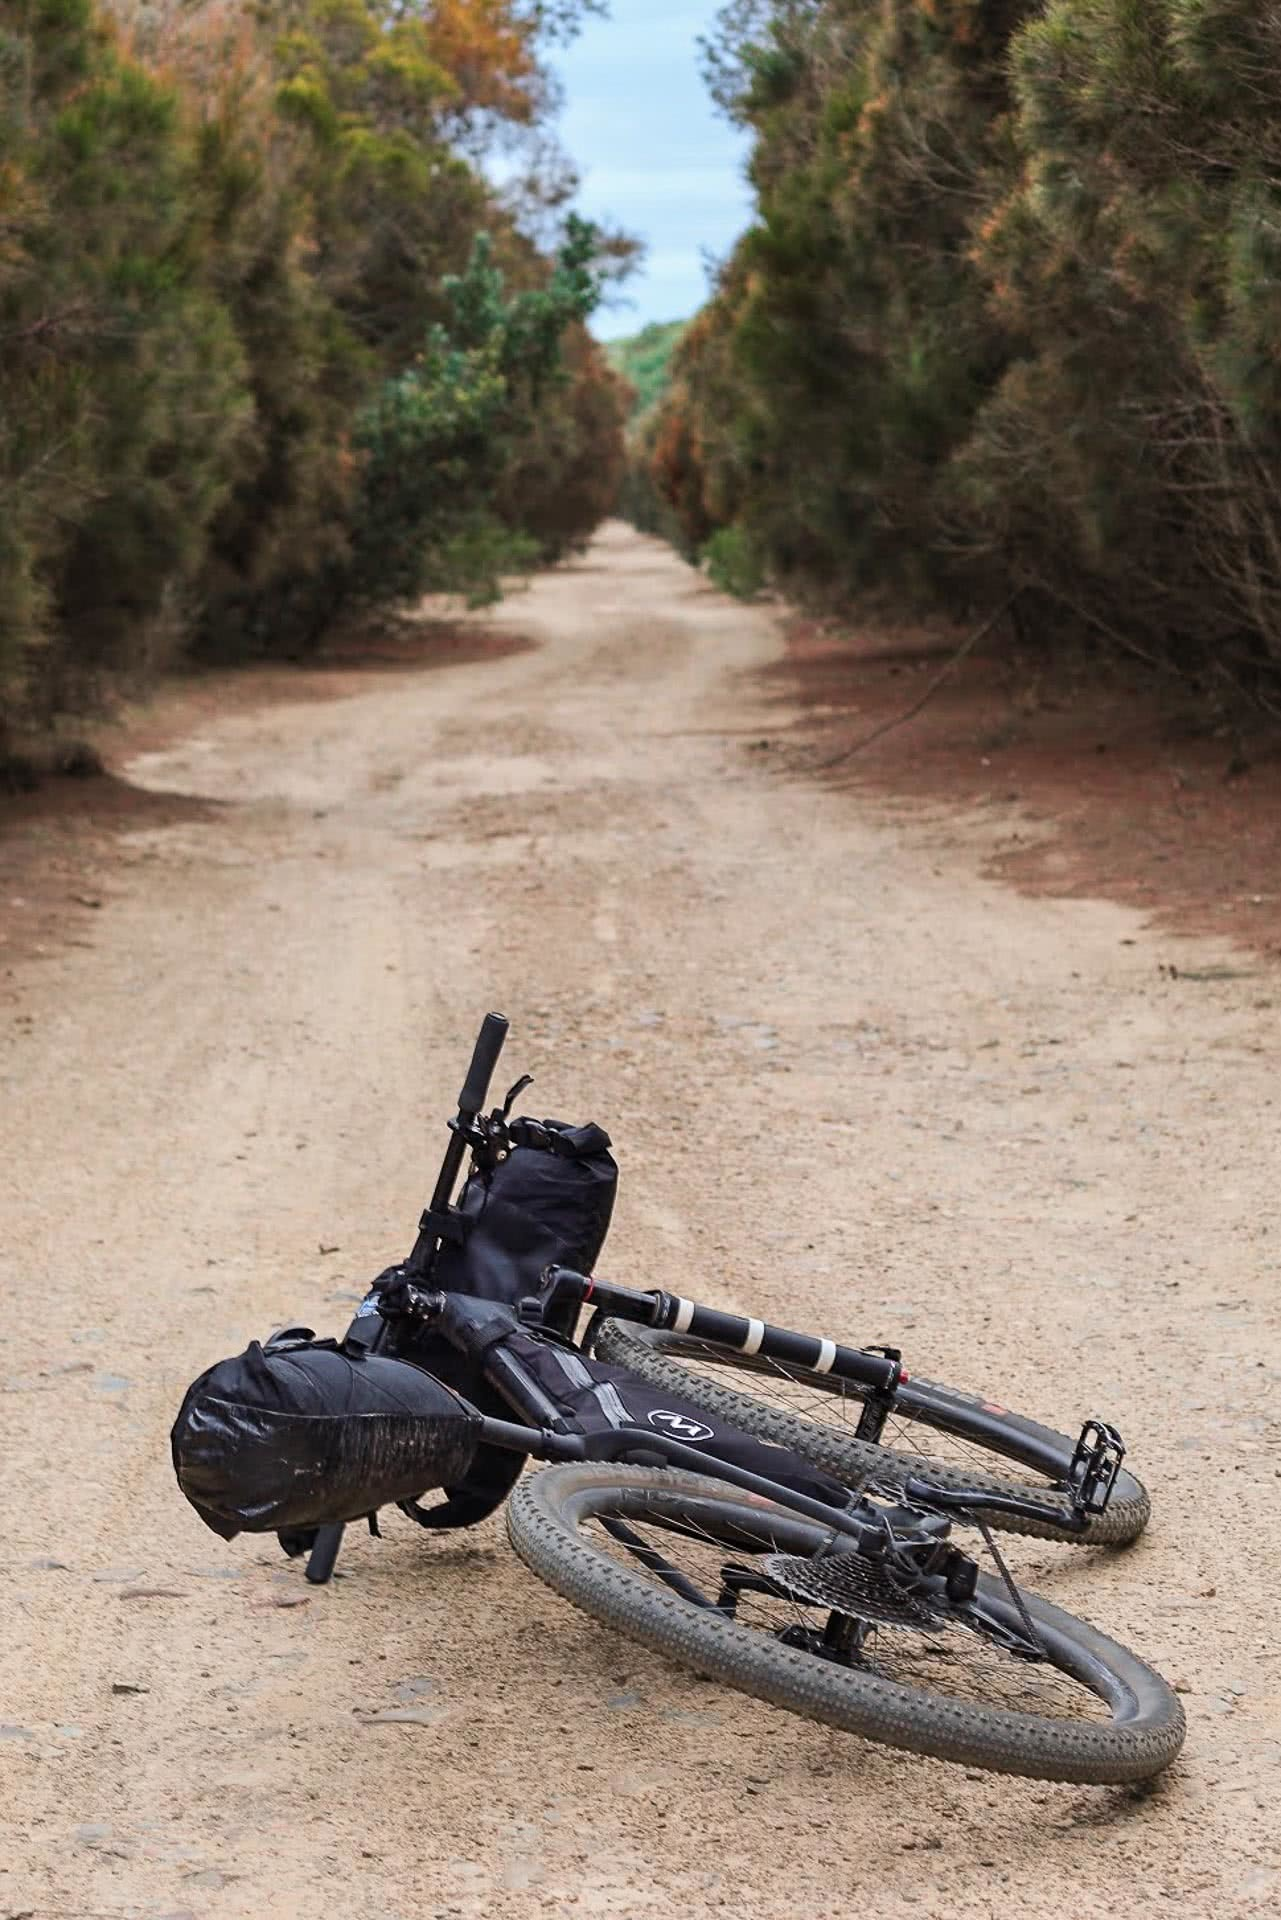 Bikes can take you places, Calm Down, E-Bikes Won't Ruin Your Sunday Ride, shot by Mattie gould, bike, pedal, e-bikes, canberra